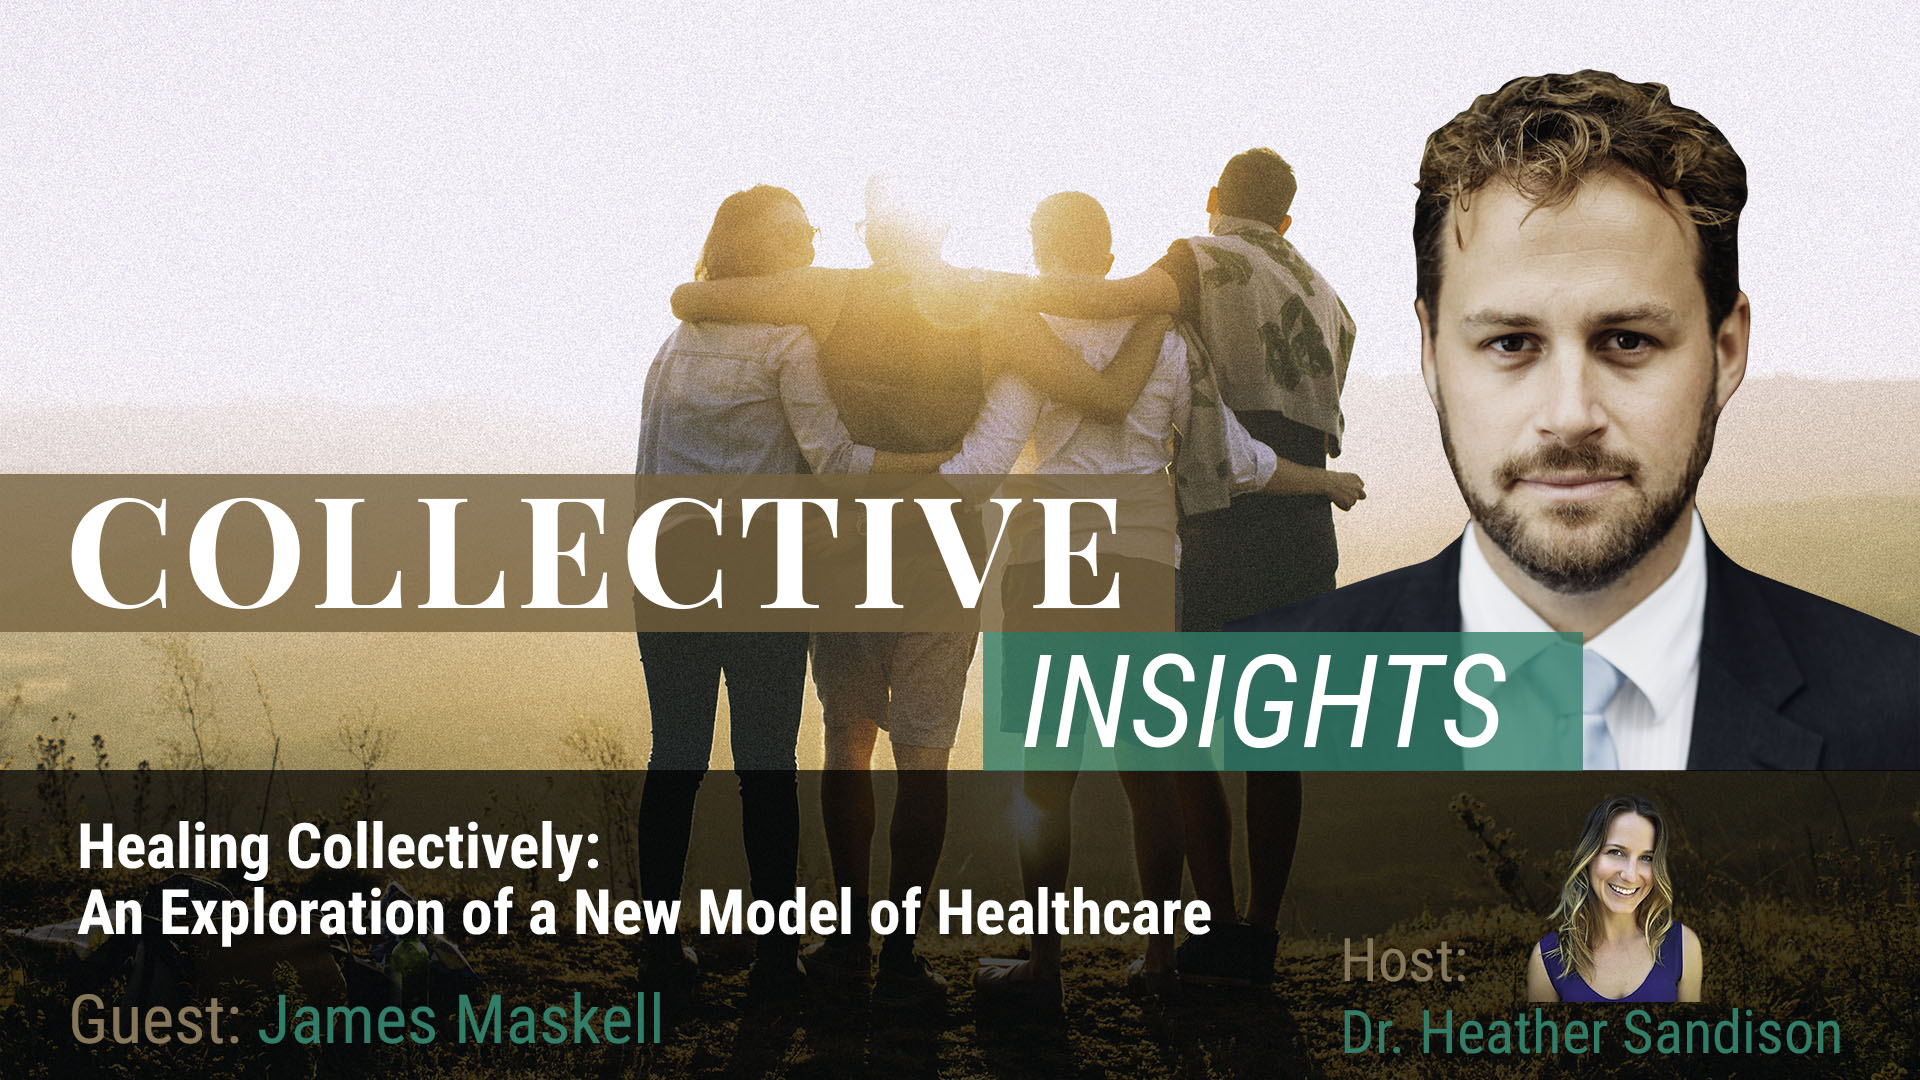 Healing Collectively: An Exploration of a New Model of Healthcare